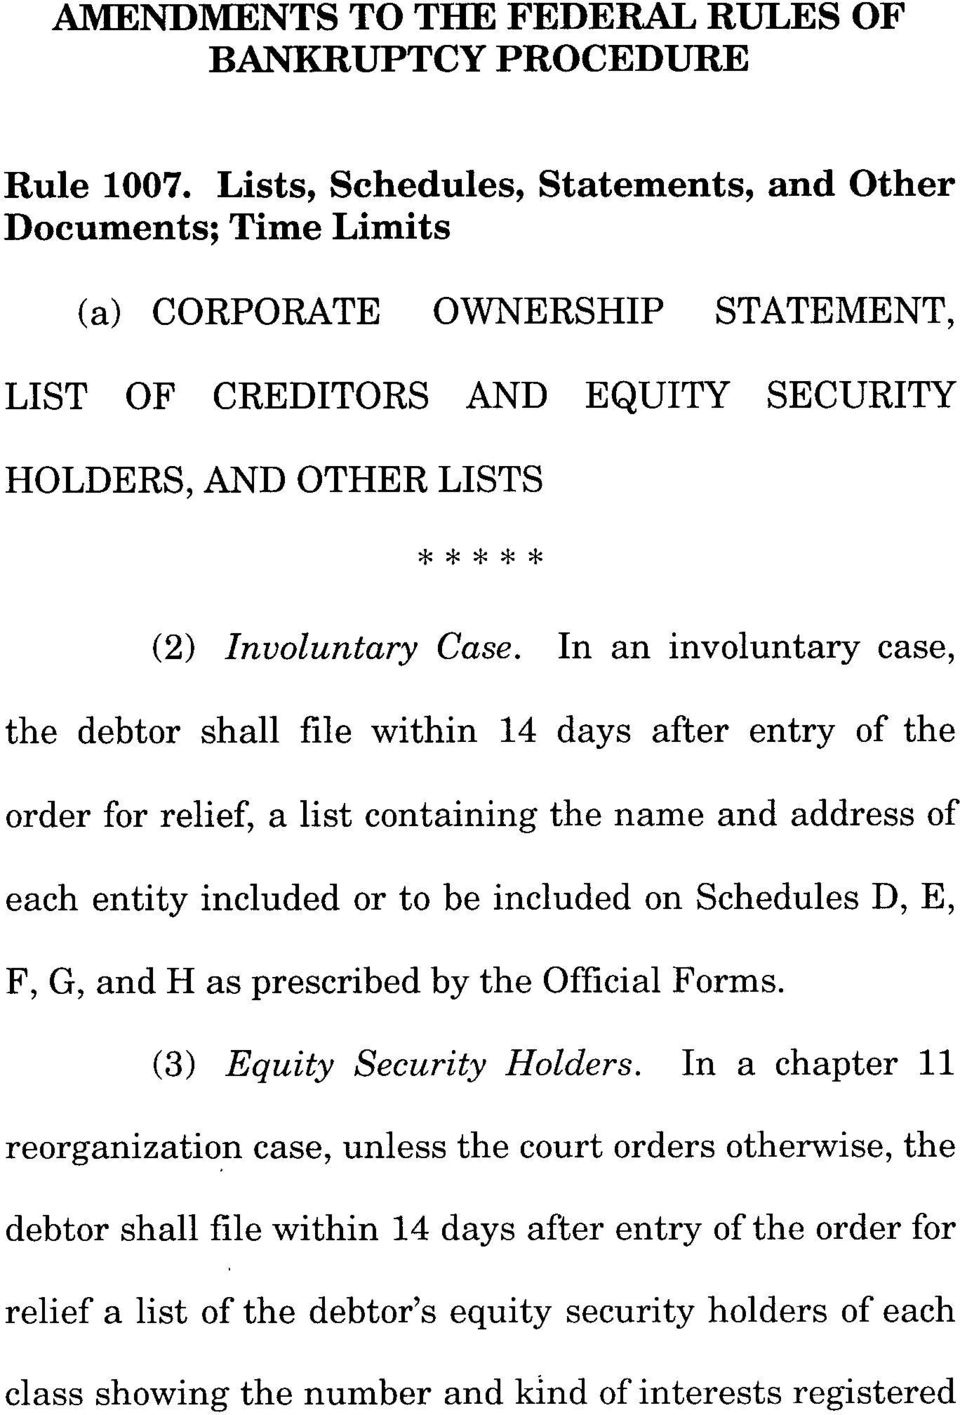 In an involuntary case, the debtor shall file within 14 days after entry of the order for relief, a list containing the name and address of each entity included or to be included on Schedules D,